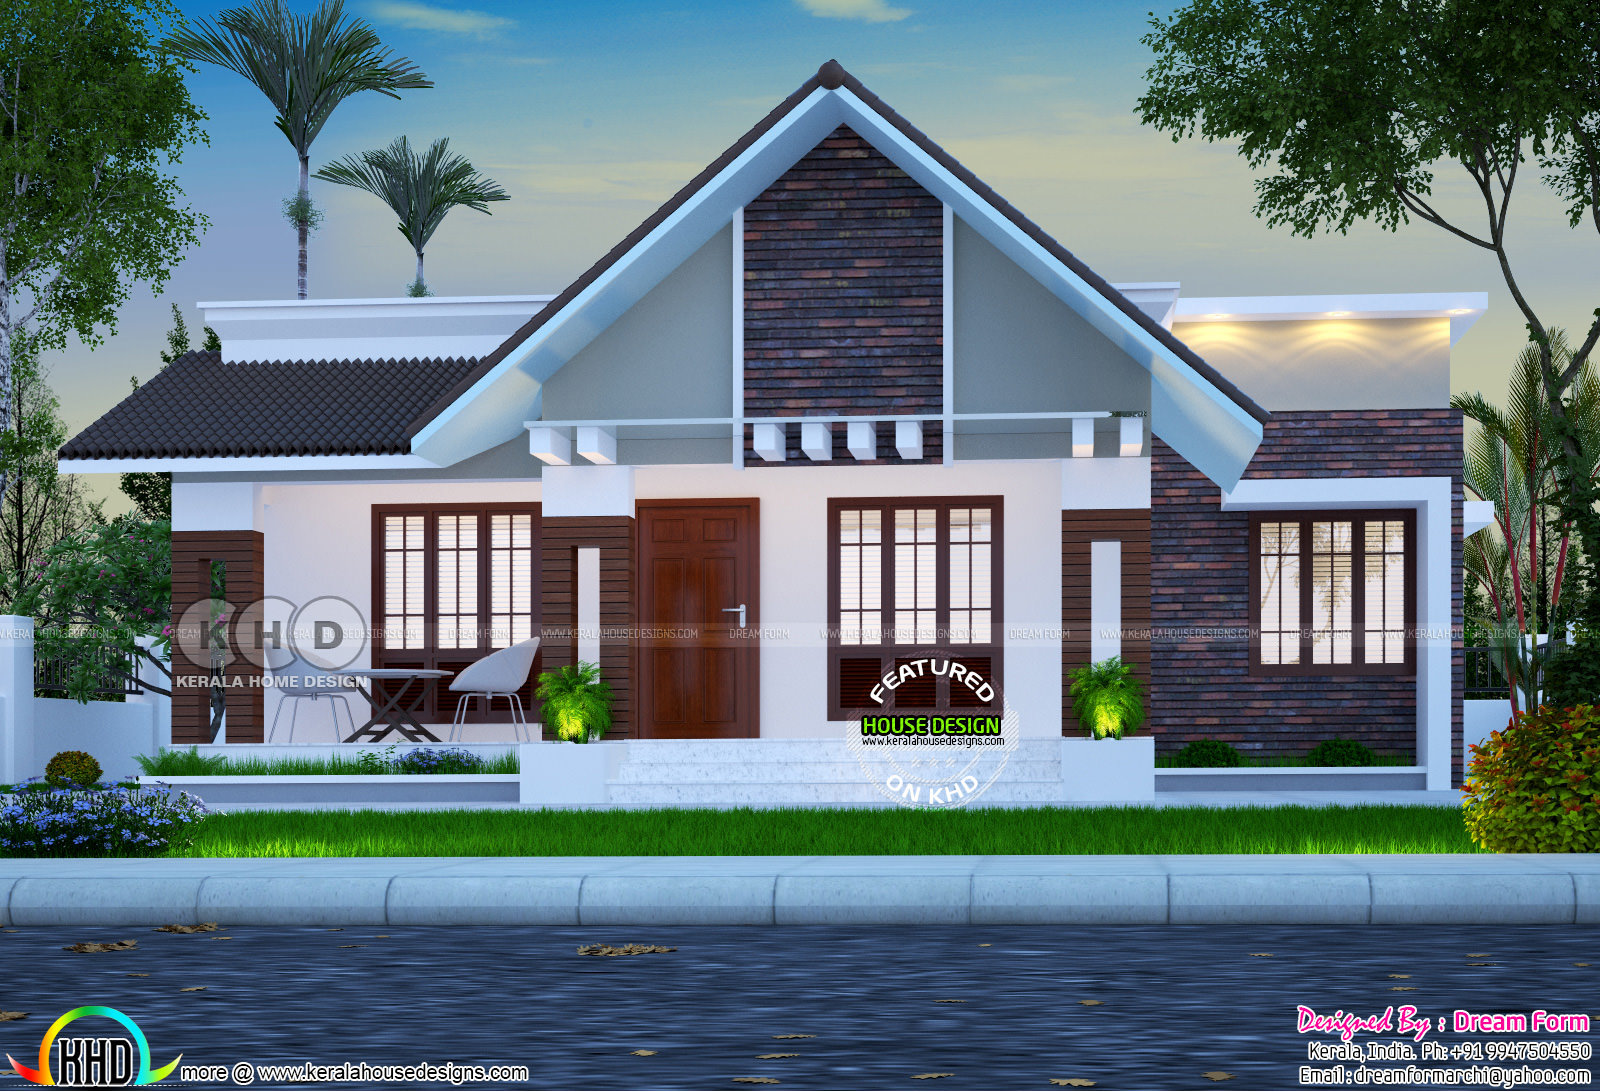 Superb low cost house plan kerala home design and floor for Low cost home plan